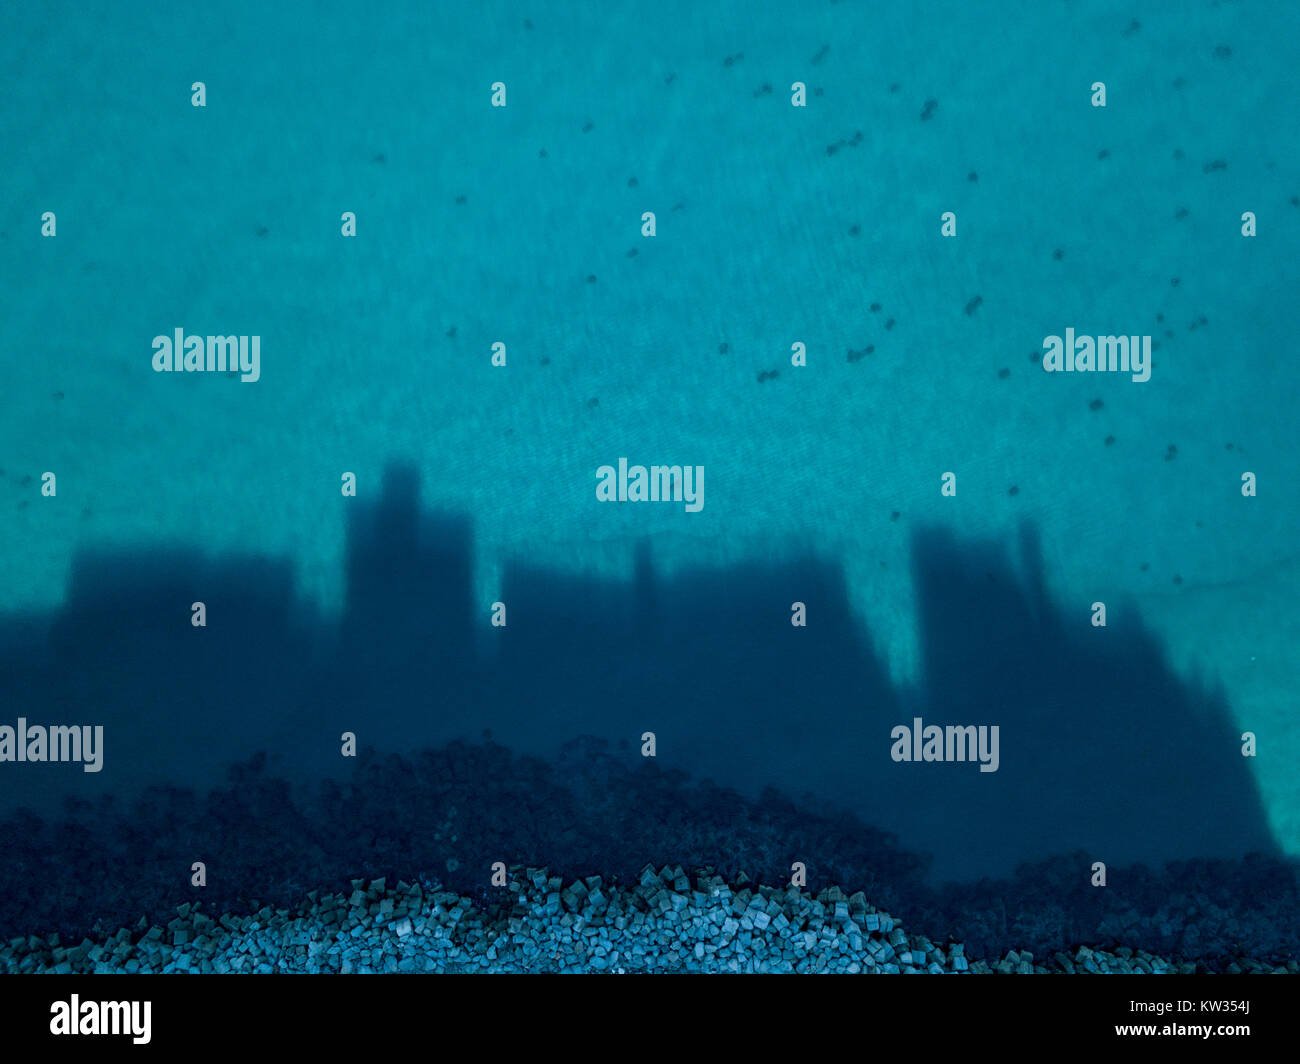 Aerial view of Pizzo Calabro, shadows of the buildings projecting onto the sea, silhouettes of houses projected - Stock Image